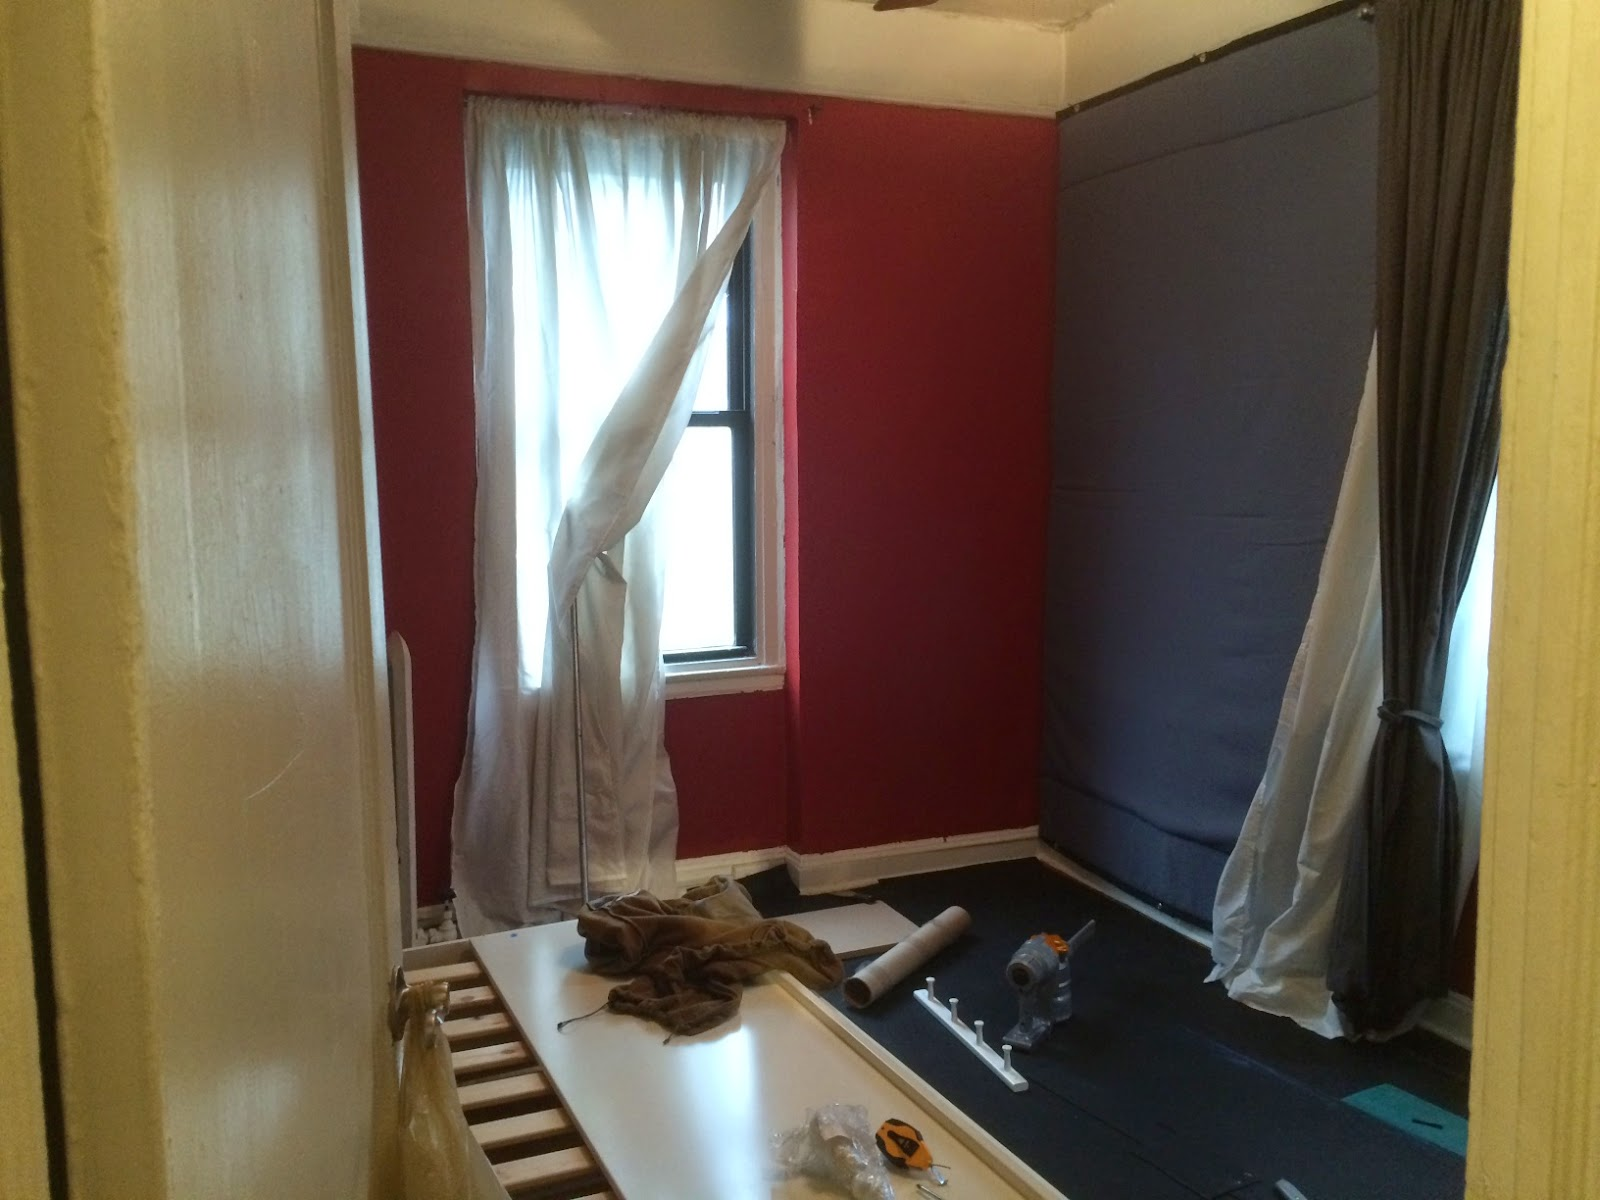 Soundproofing A Room On The Cheap